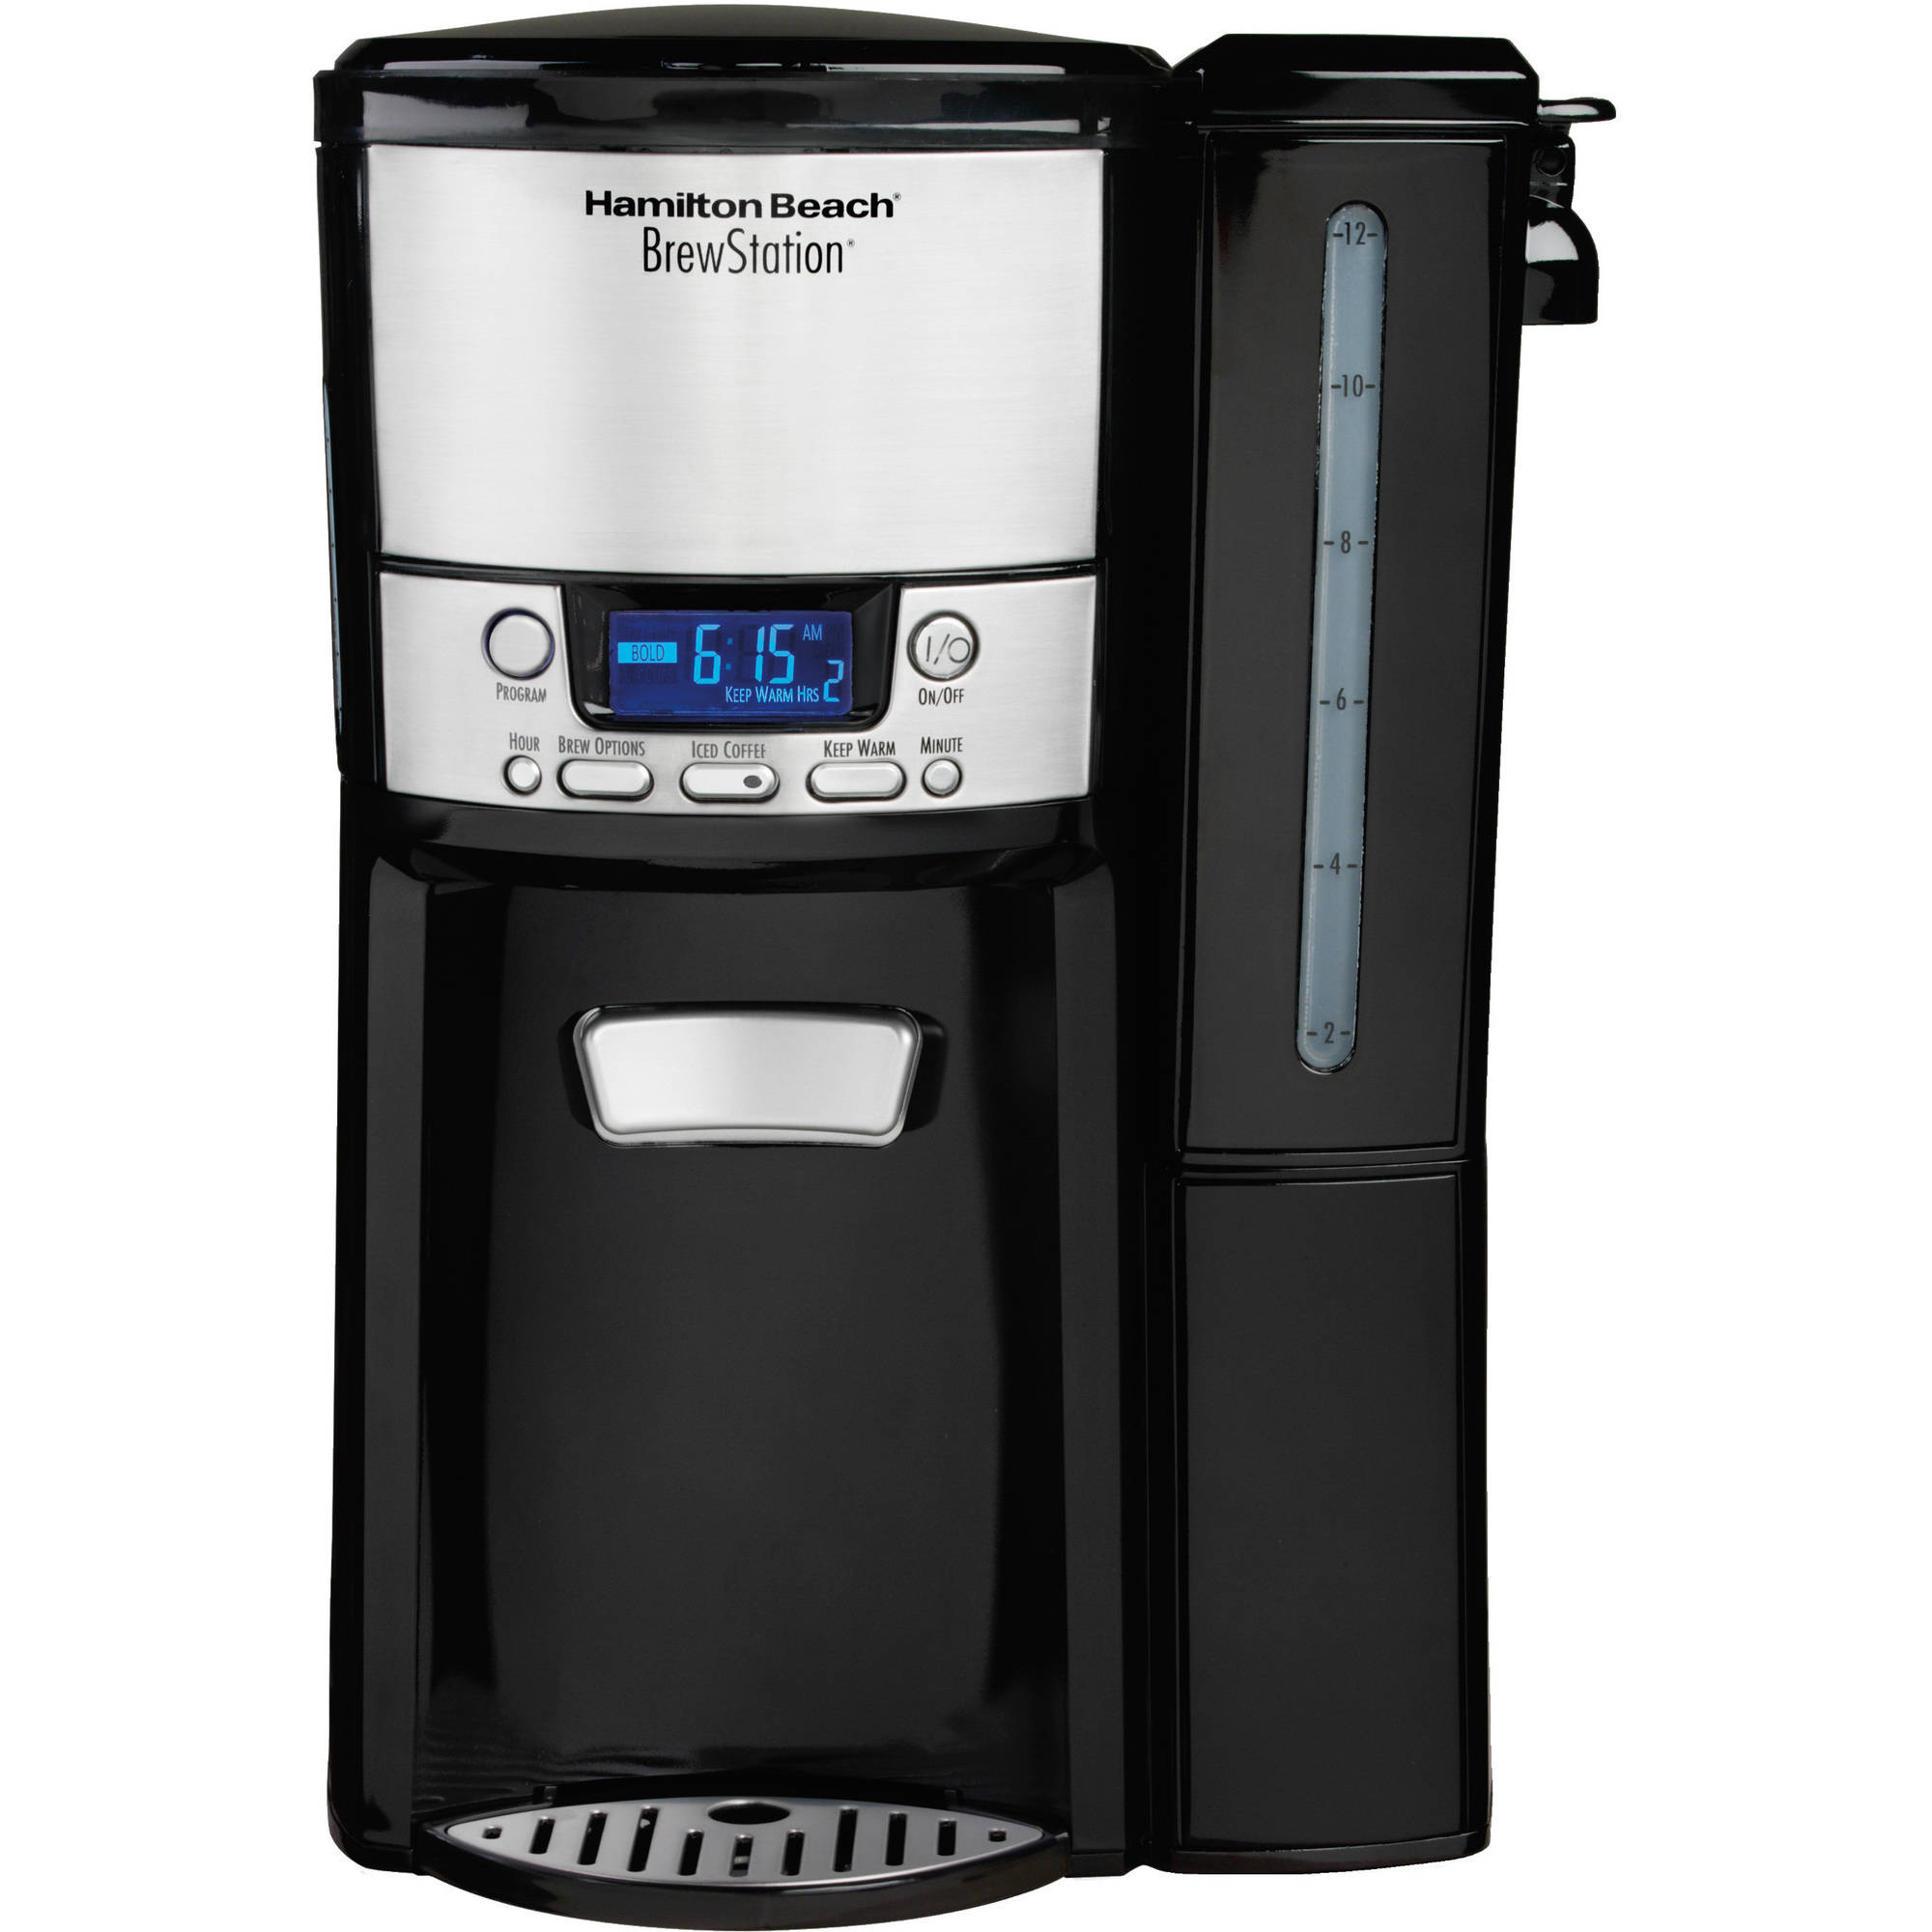 Hamilton Beach Brewstation 12 Cup Dispensing Coffeemaker With Removable Water Reservoir Model 47900